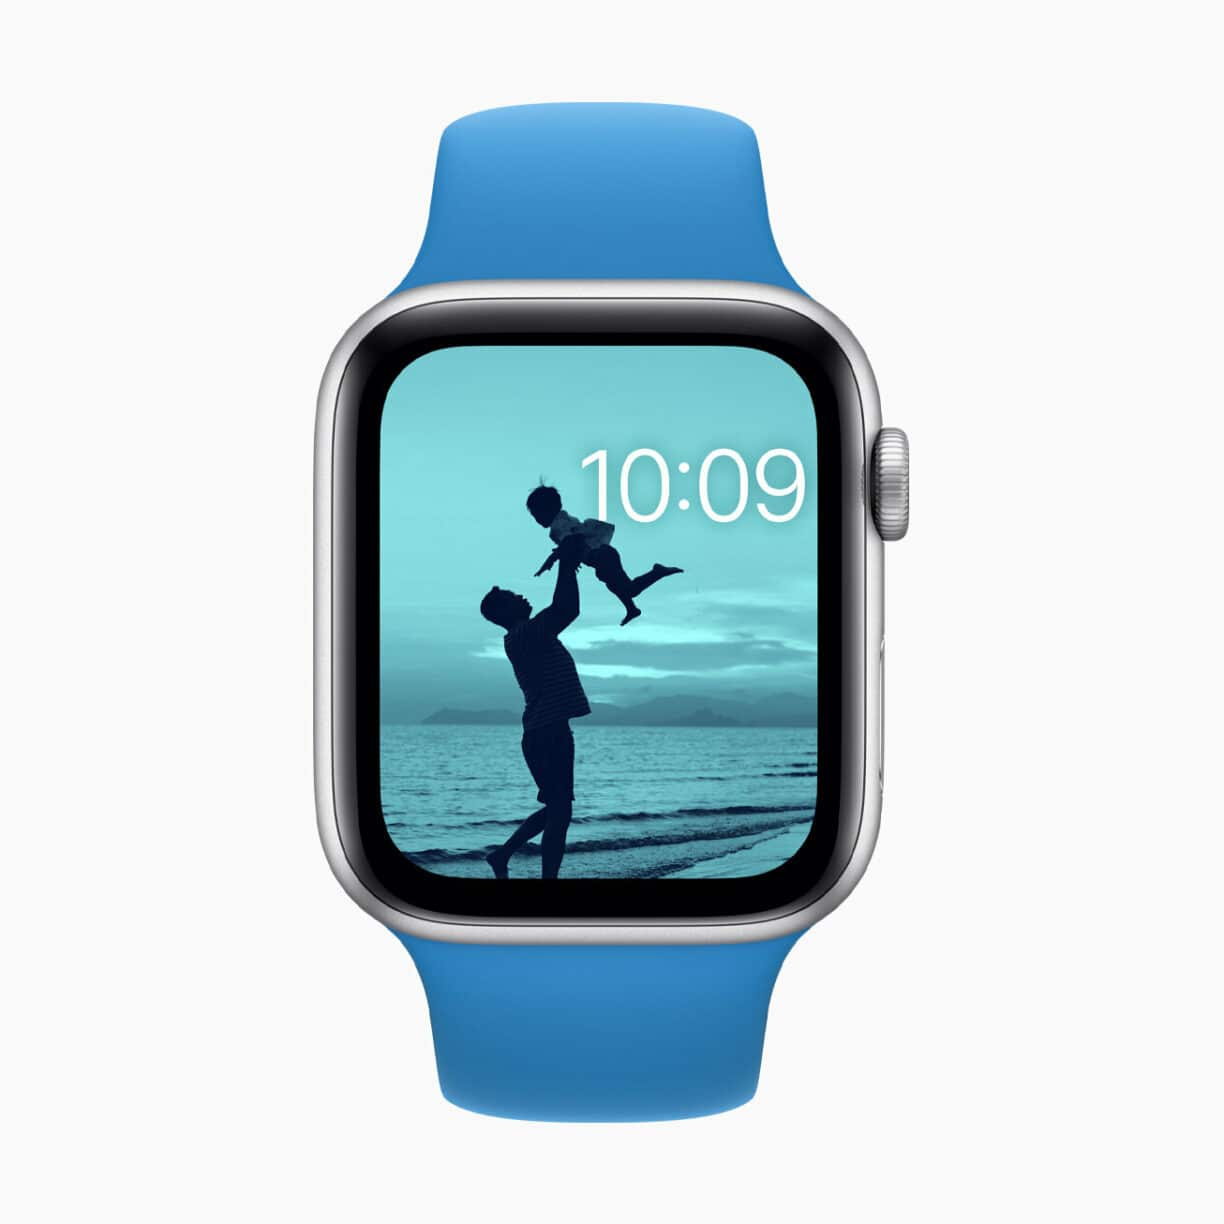 Apple watch watchos7 photo face filters 06222020